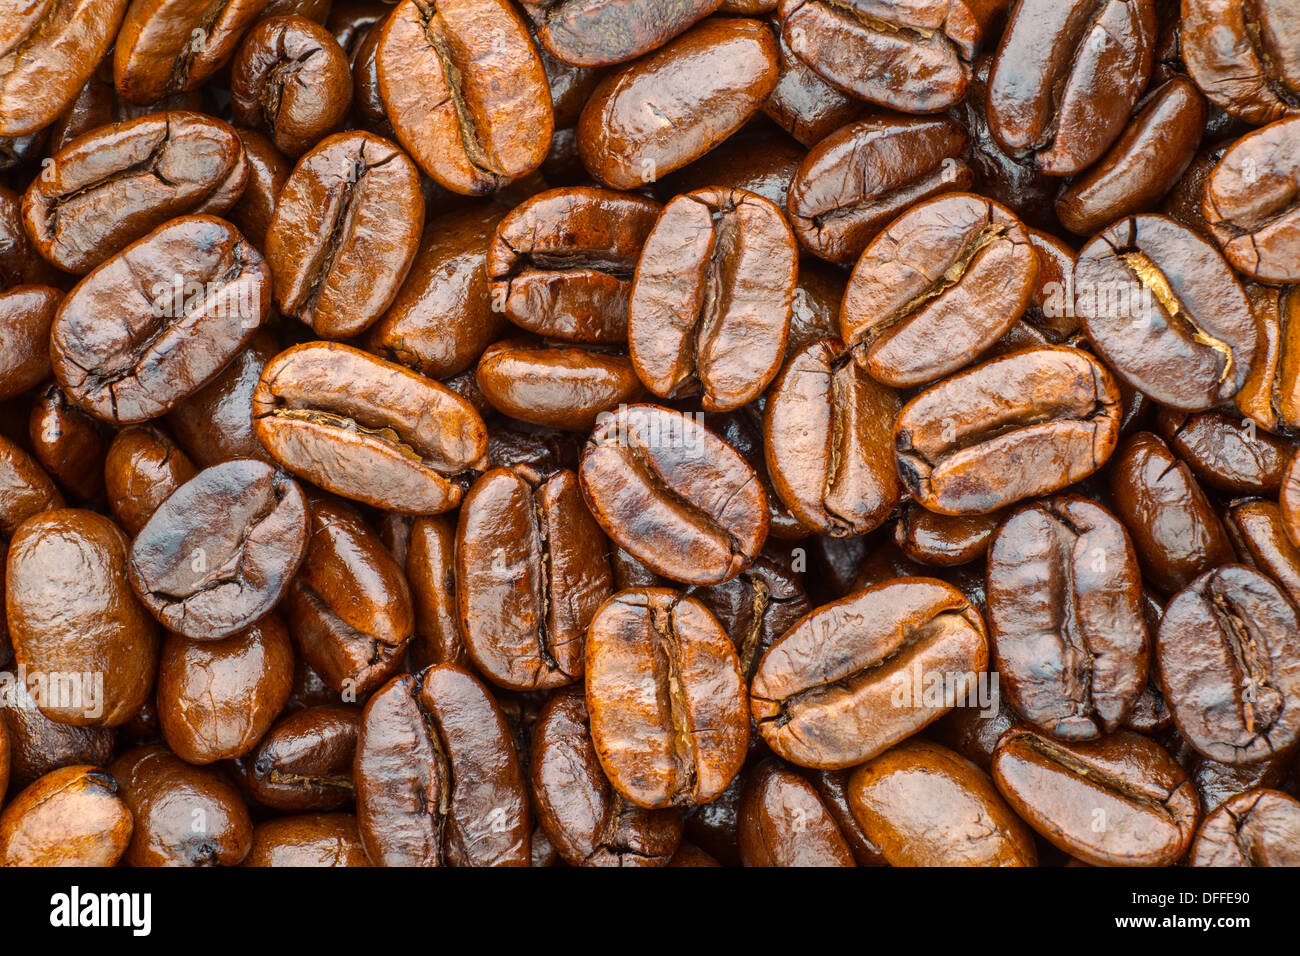 roasted coffee beans arabica - Stock Image